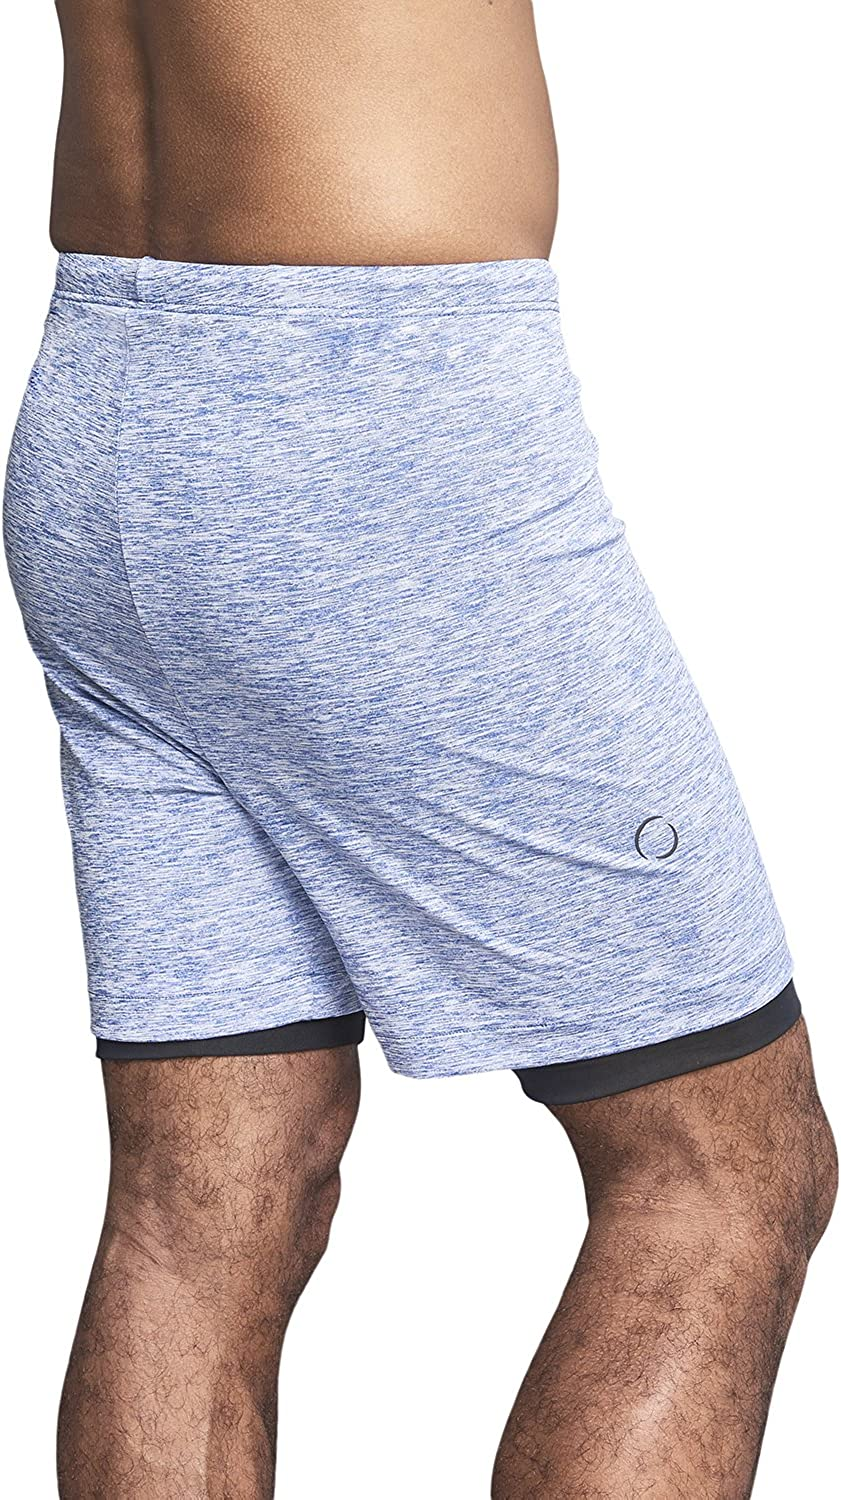 Pilates Small OHMME Clothing Two Dogs Men/'s Double Layer 2 in 1 Yoga Shorts Soft and Stretchy Yoga Pants Blue Short Pant; Comfortable and Loungewear Perfect for Yoga